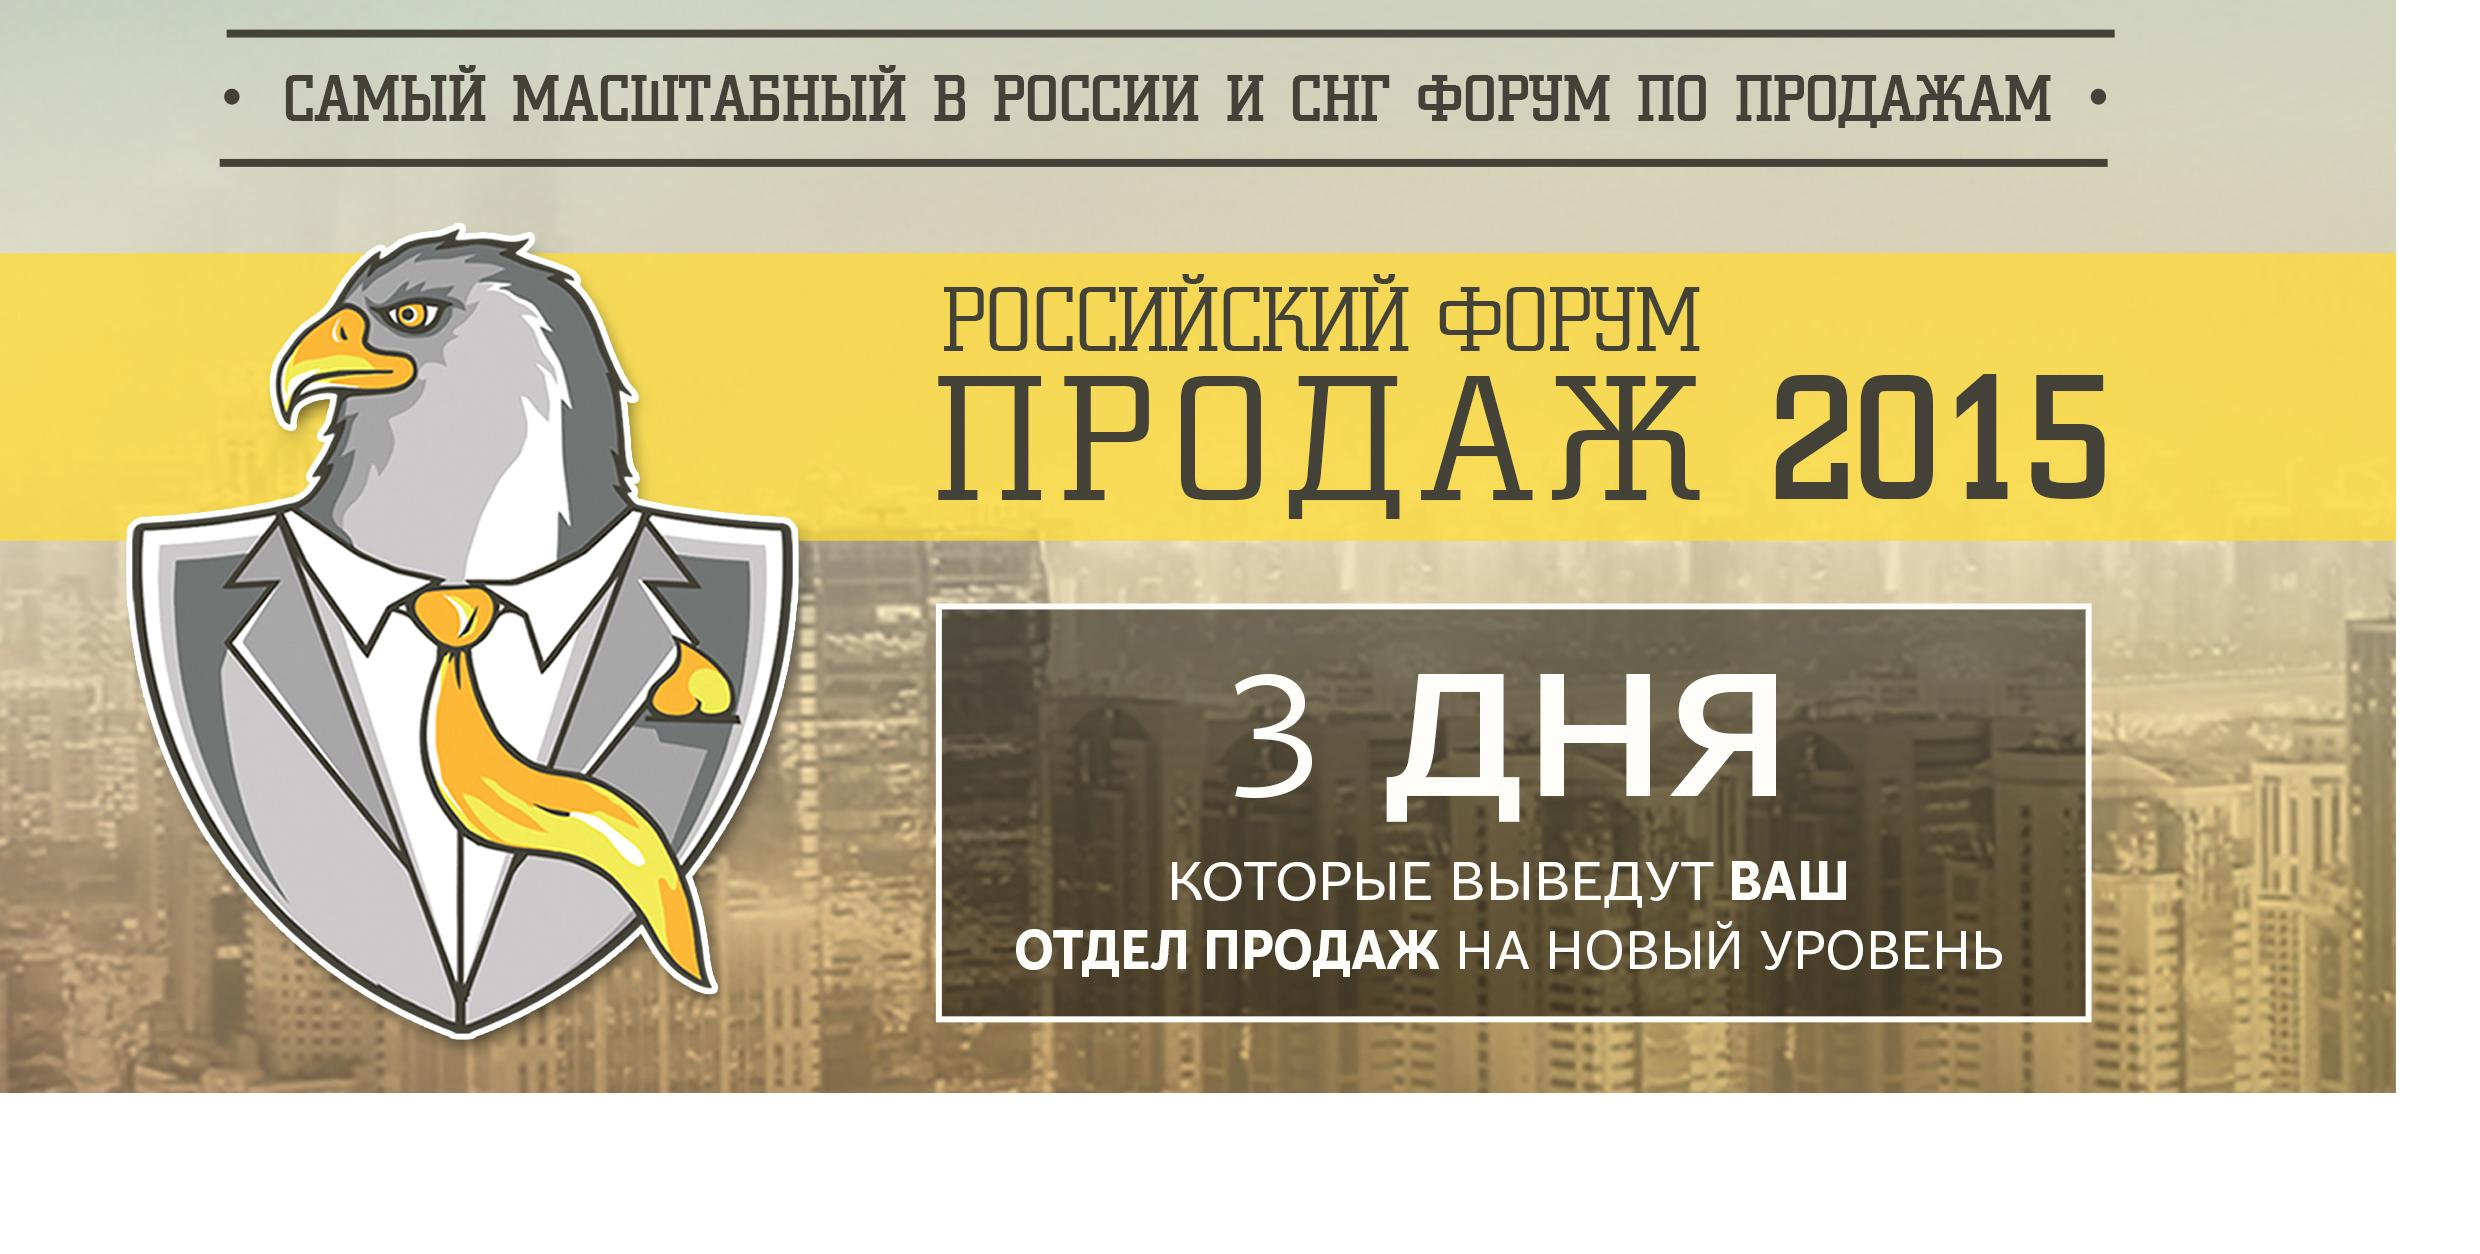 On April 22-25, 2015, in Moscow and online throughout Russia and the CIS, a cult event of the company Prime Time Forums will take place: RUSSIAN SALES FORUM 2015.